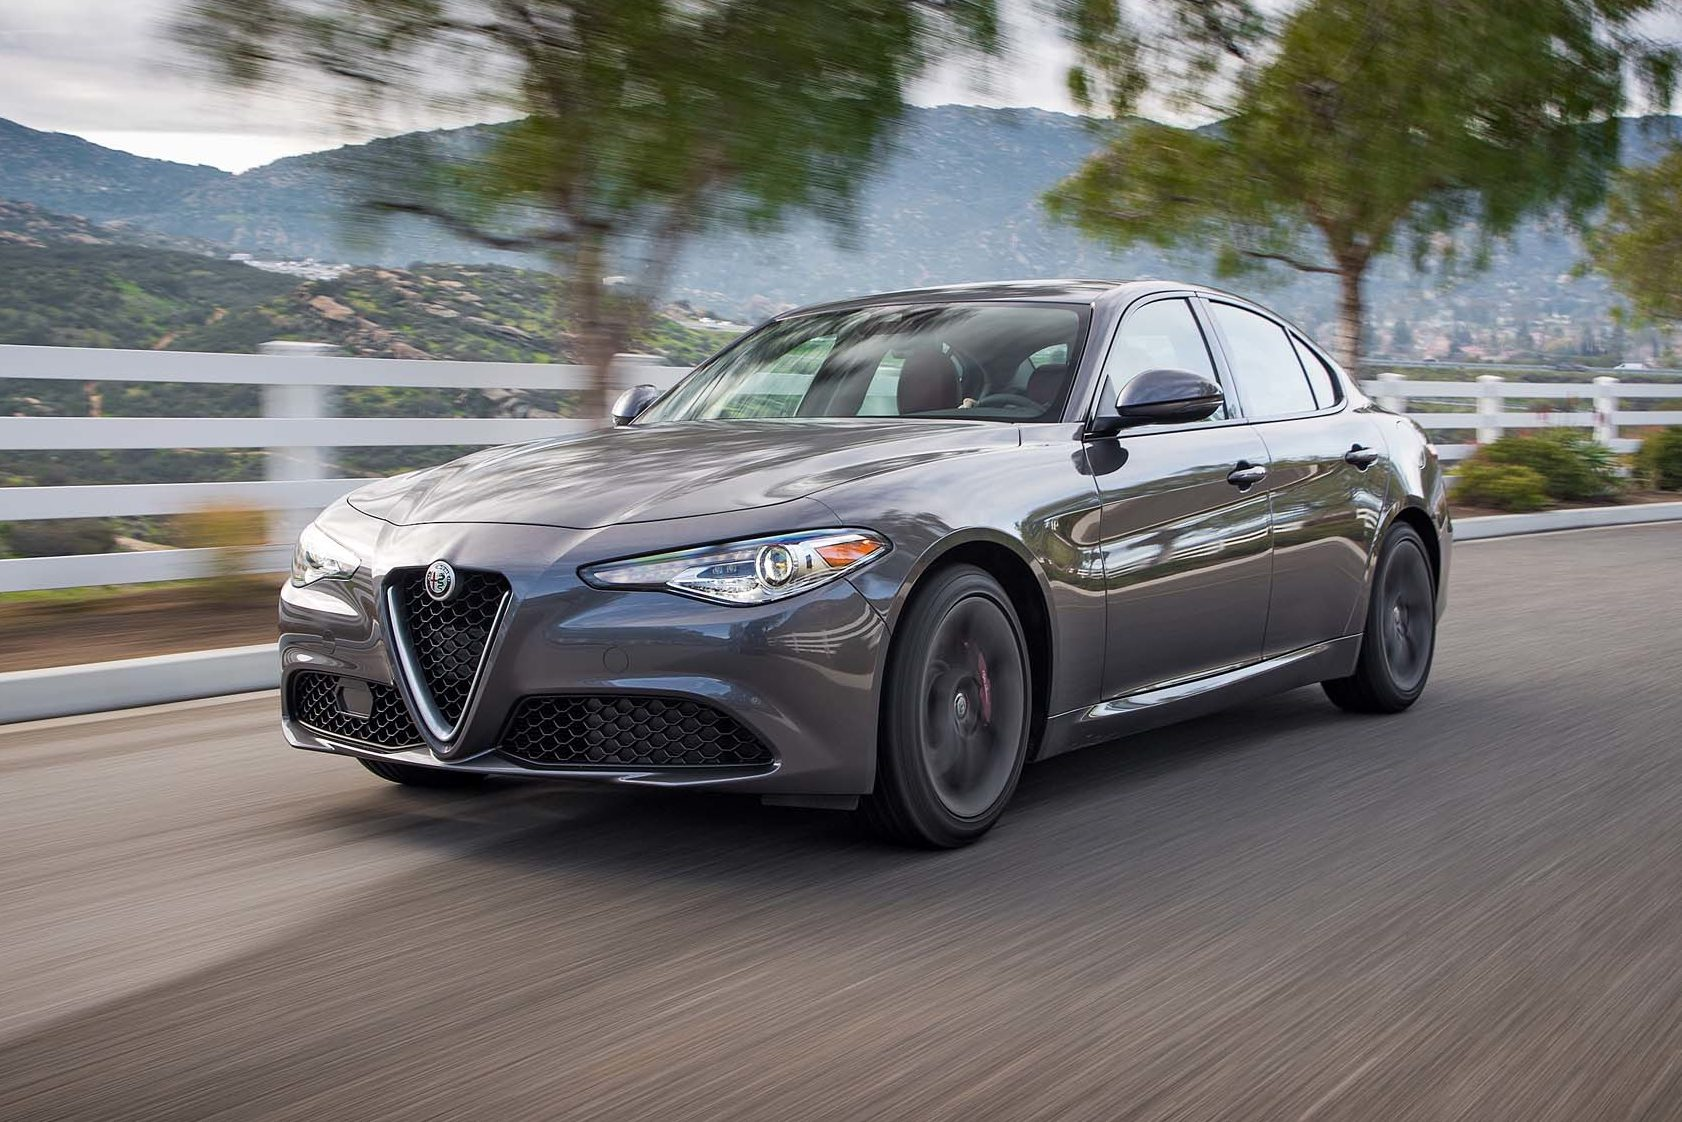 2017 Alfa Romeo Giulia 20 Front Three Quarter In Motion E1488560863605